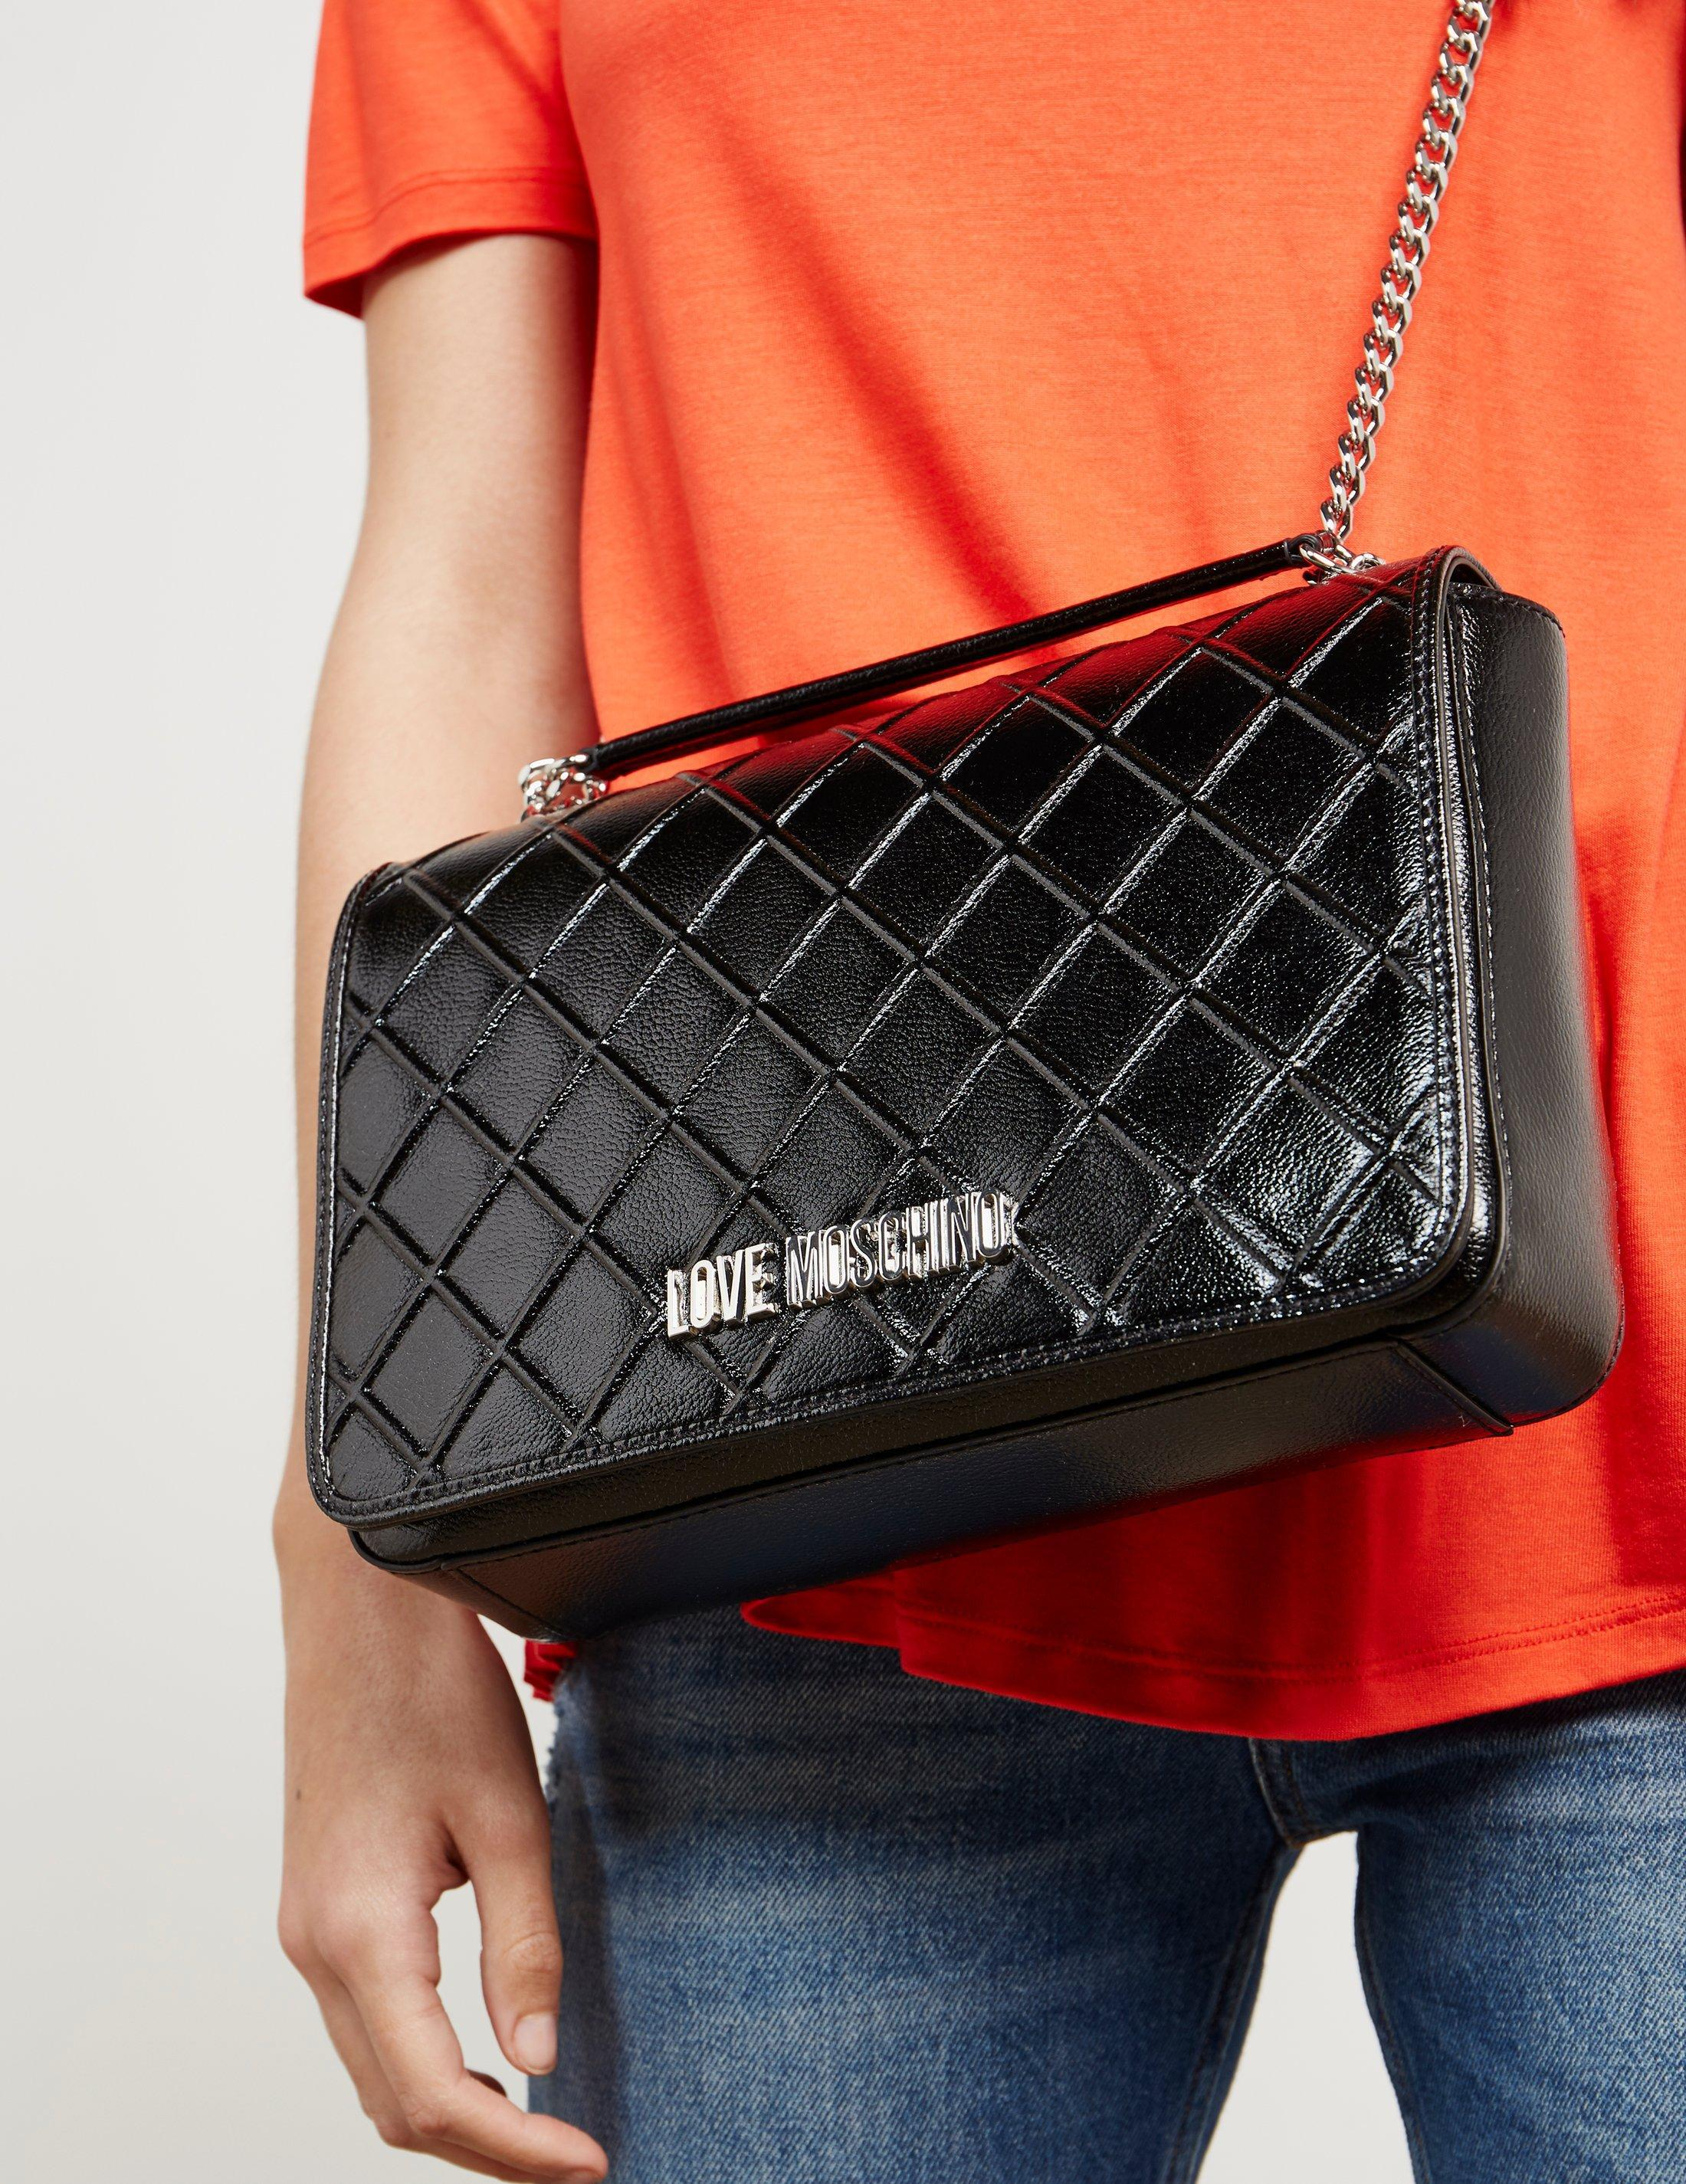 Love Moschino Womens Quilt Chain Shoulder Bag Black In Lyst Longchamp Le Pliage Cocarde Crossbody Navy Gallery